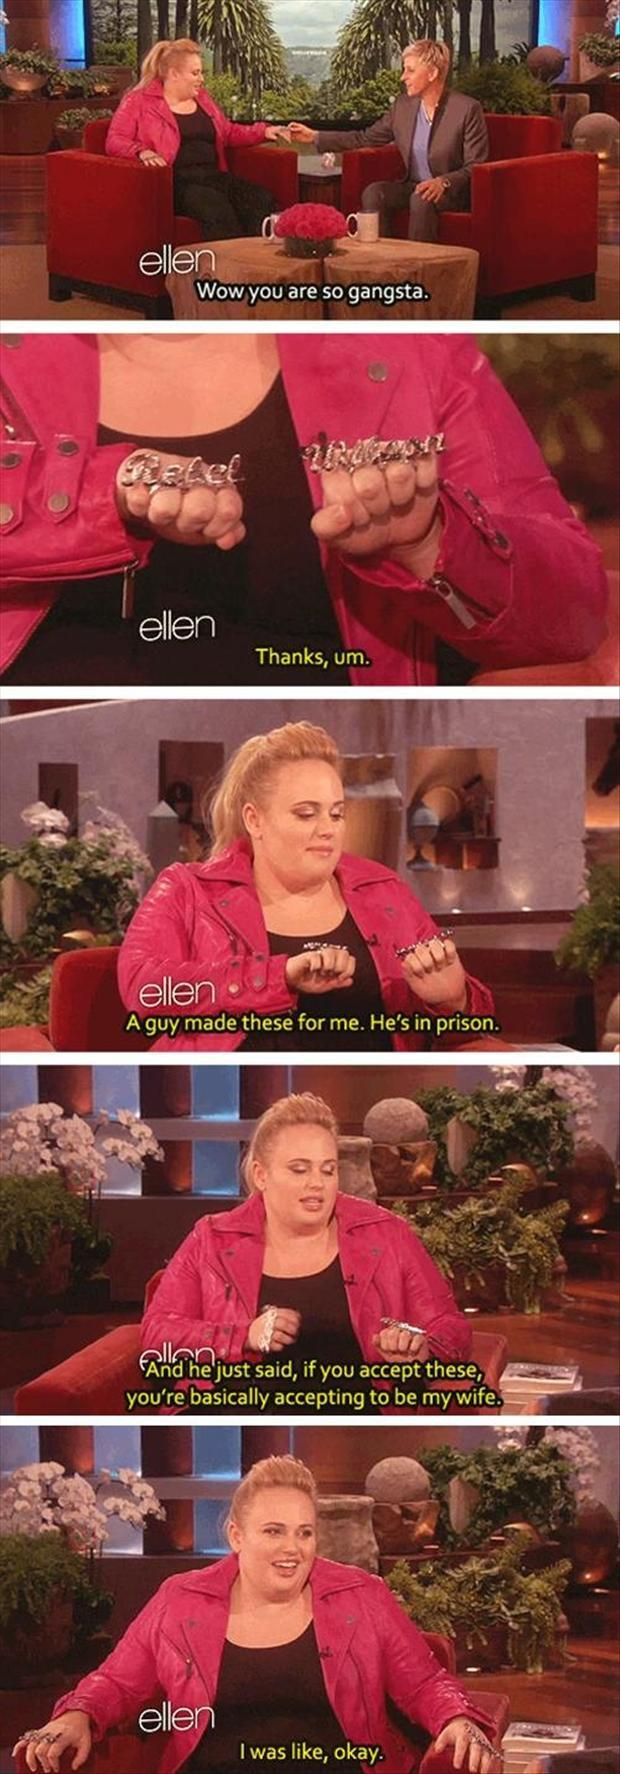 Fat Amy! She's hilarious